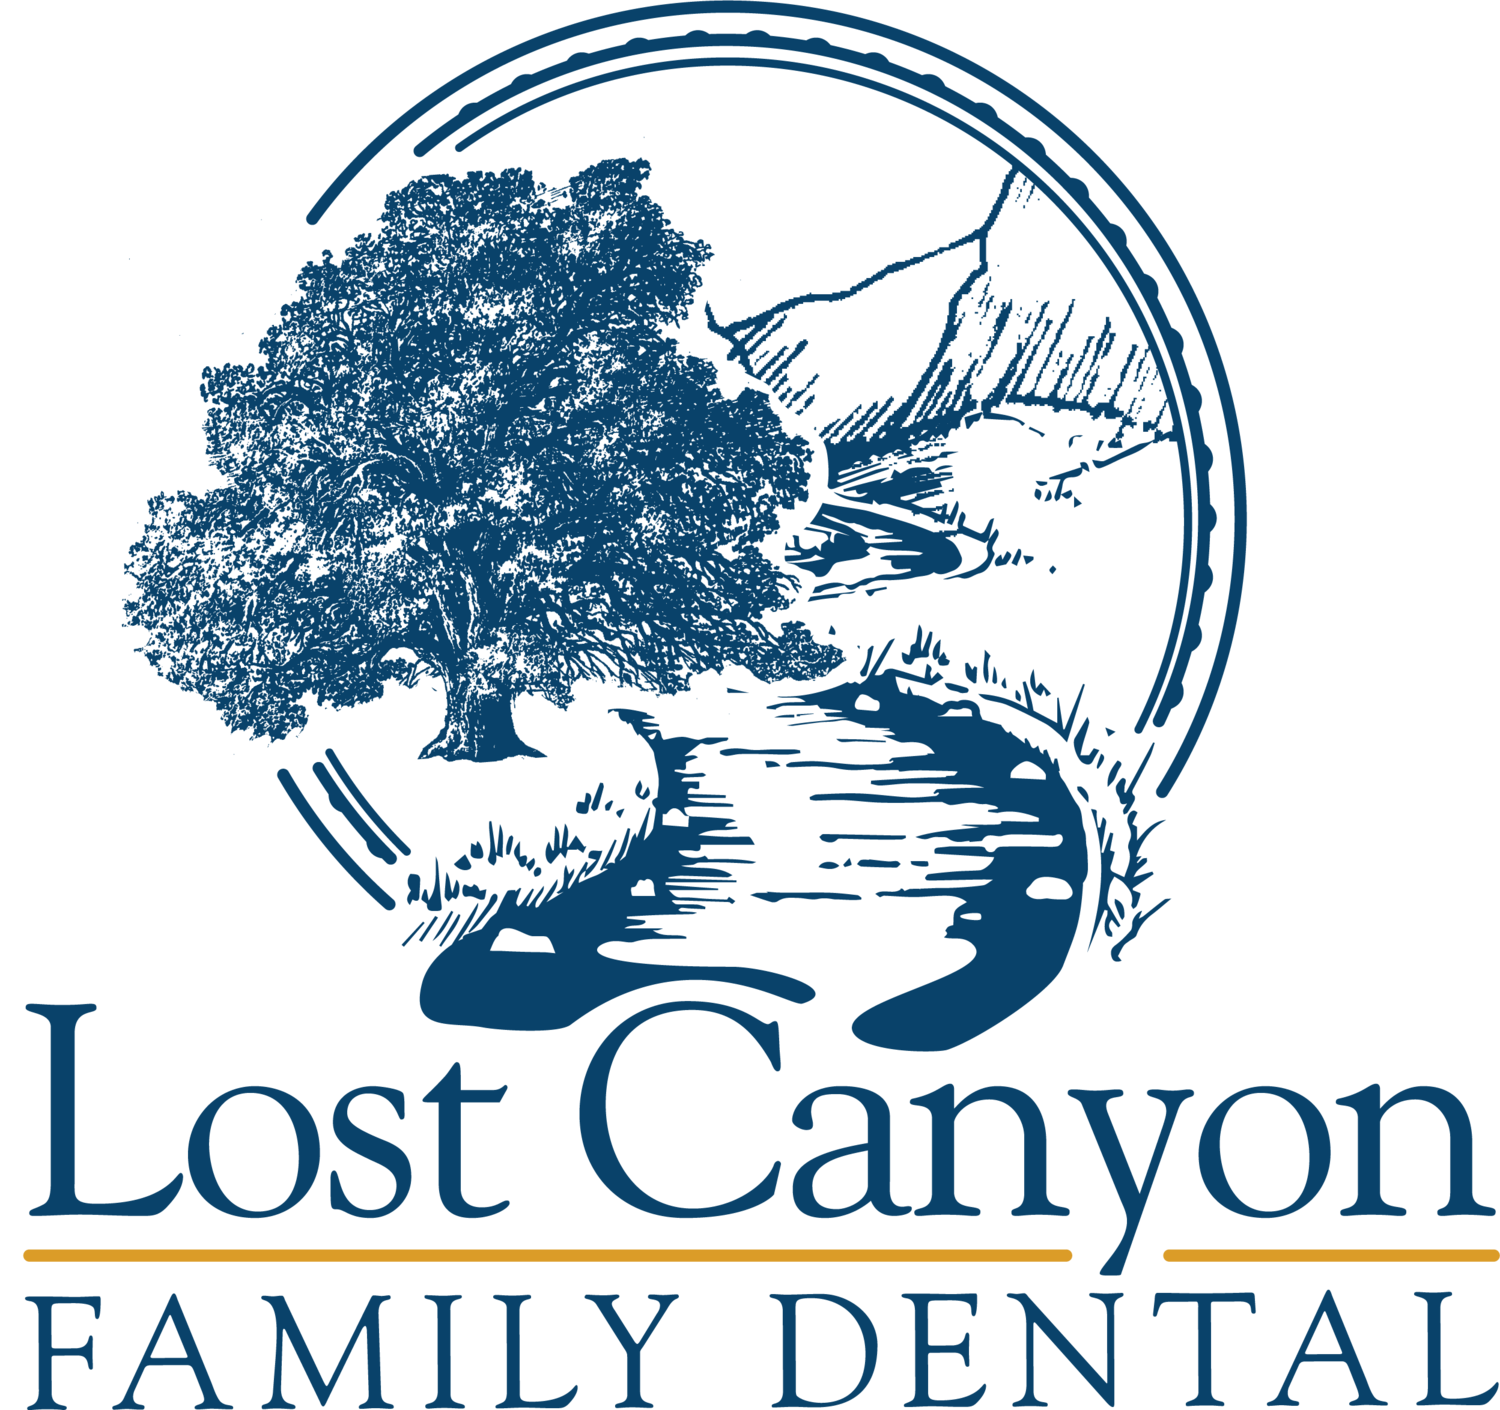 Lost Canyon Family Dental